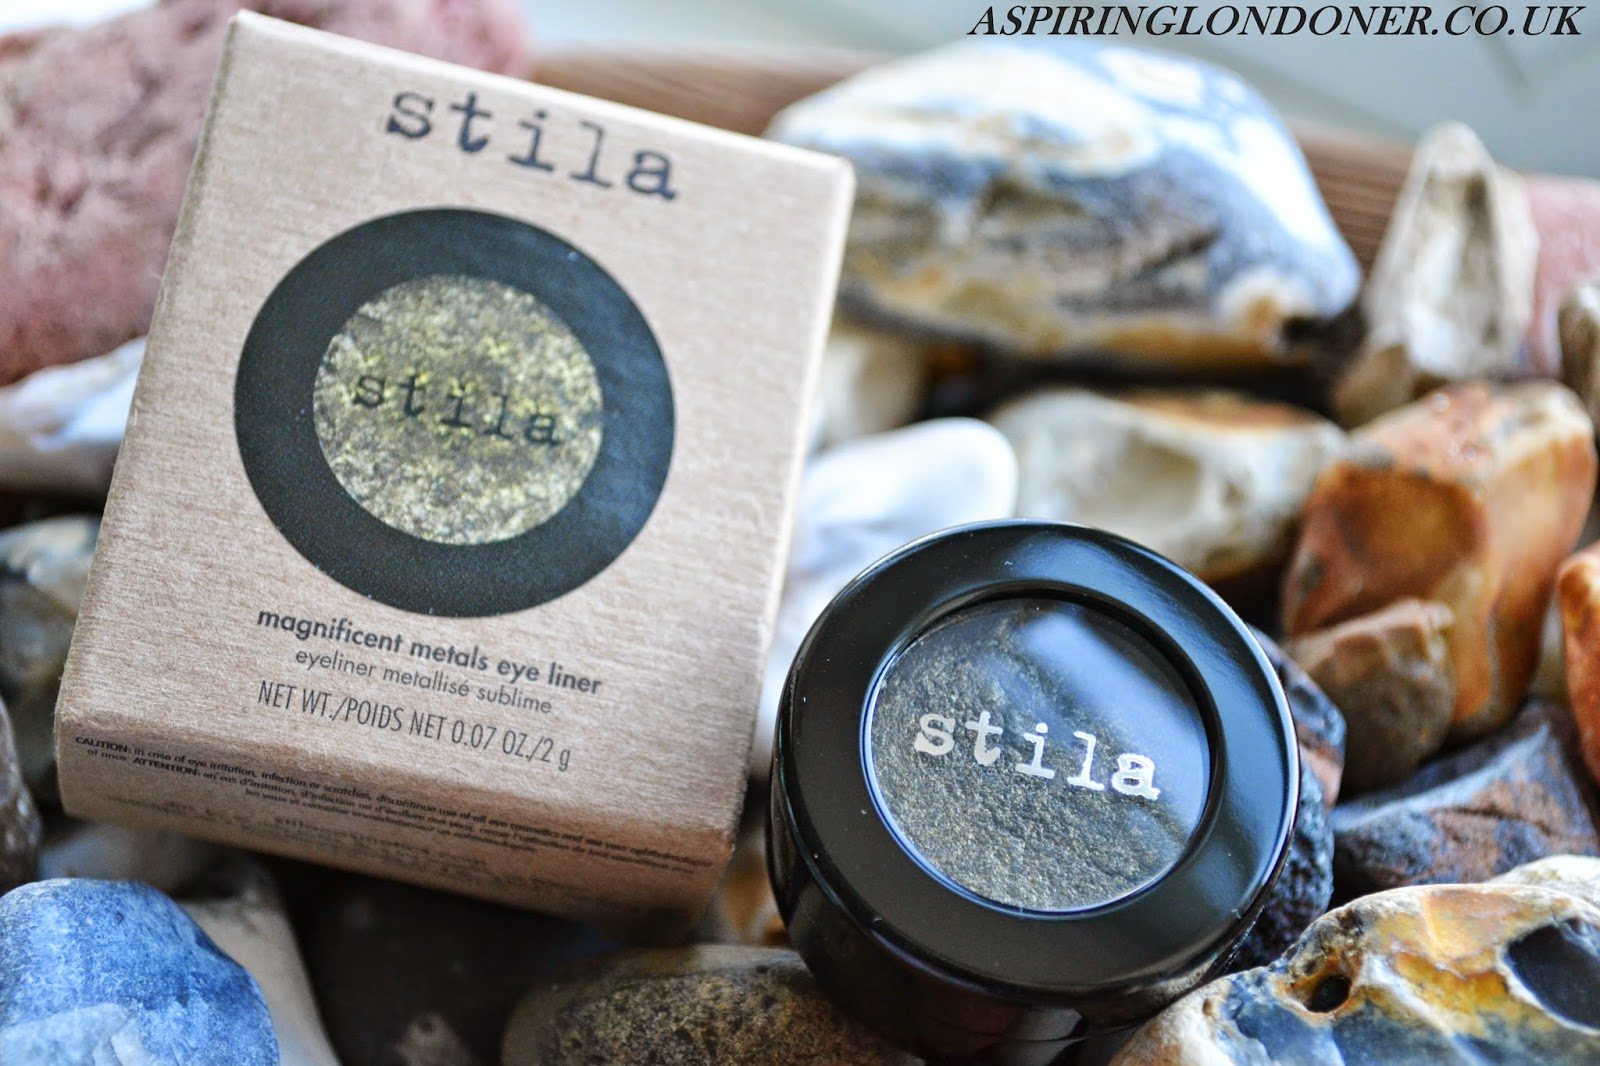 Stila Magnificent Metals Eye Liner Review & Swatches - Aspiring Londoner